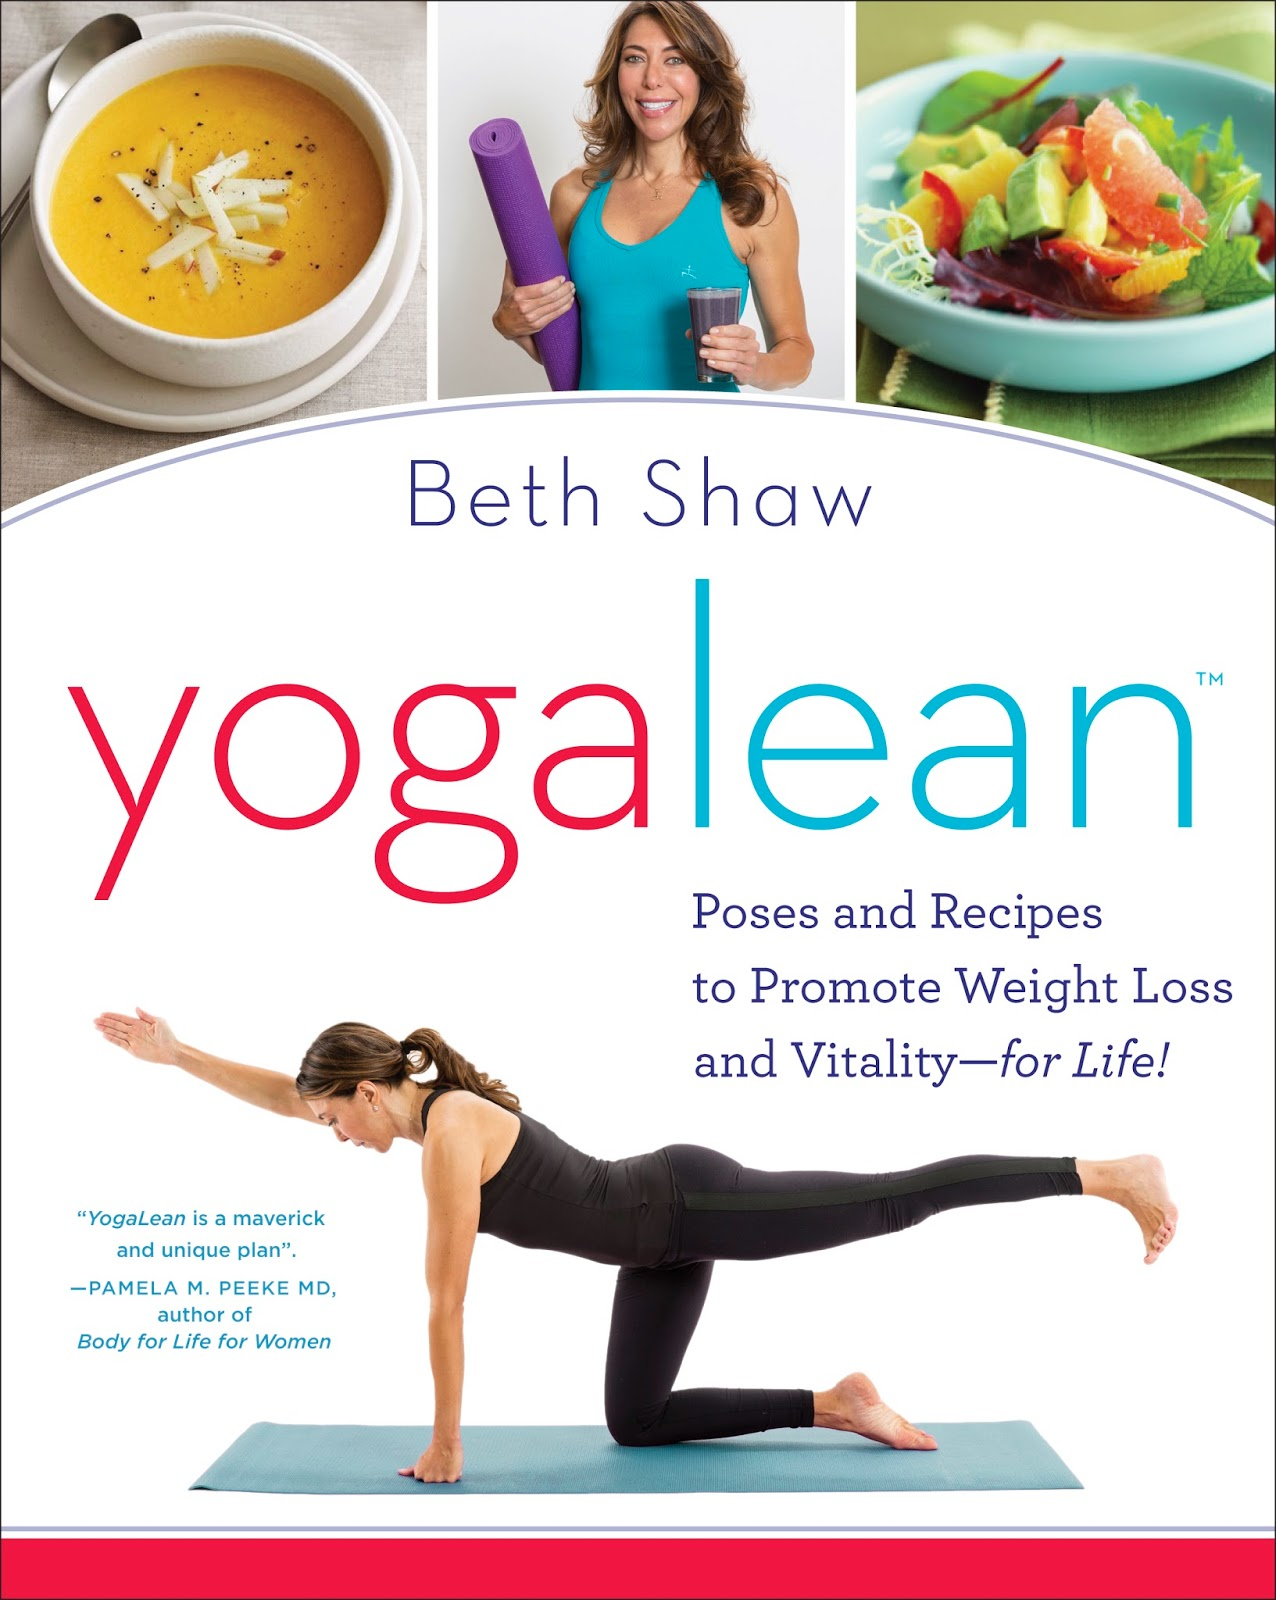 YogaLean book: Giveaway on HinesSight Blog. Ends March 15.